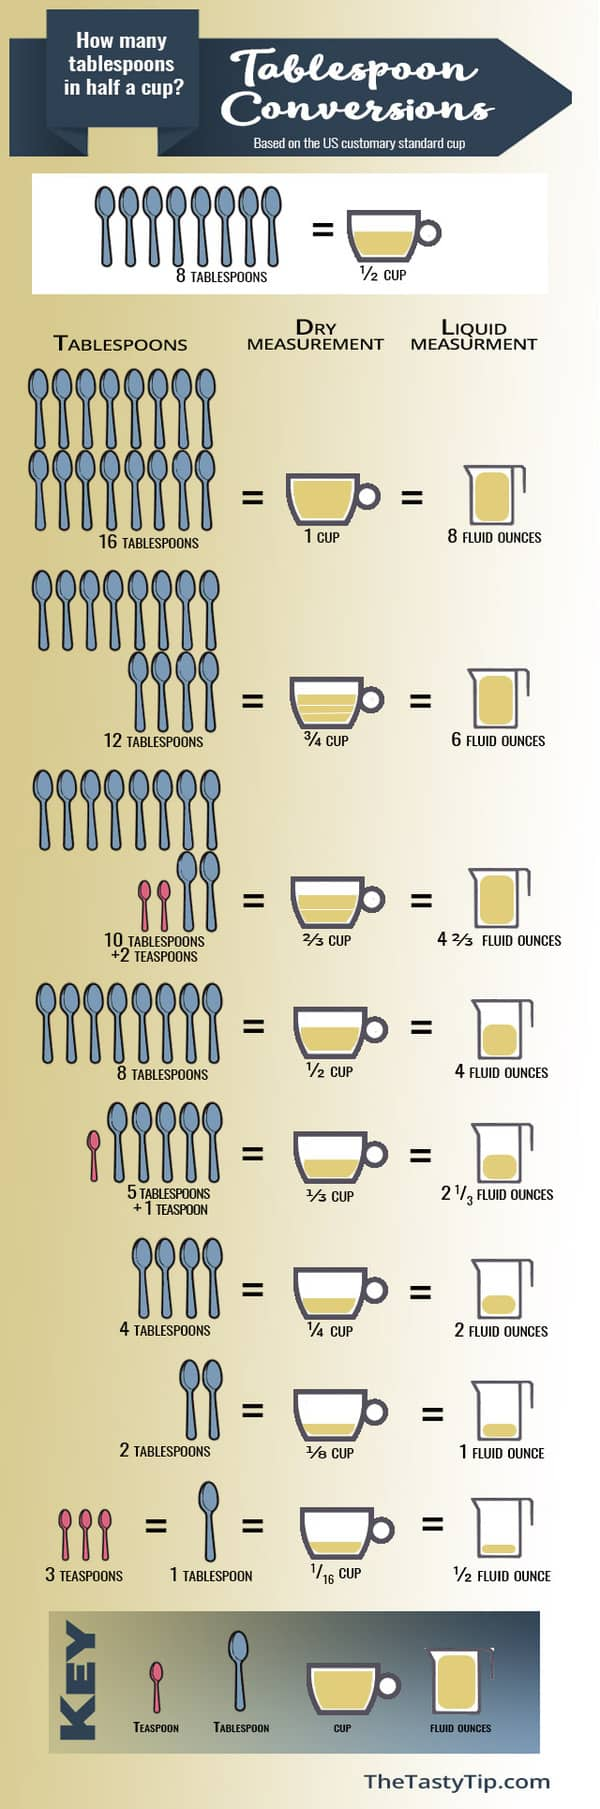 infographic showing how many tablespoons are in half a cup